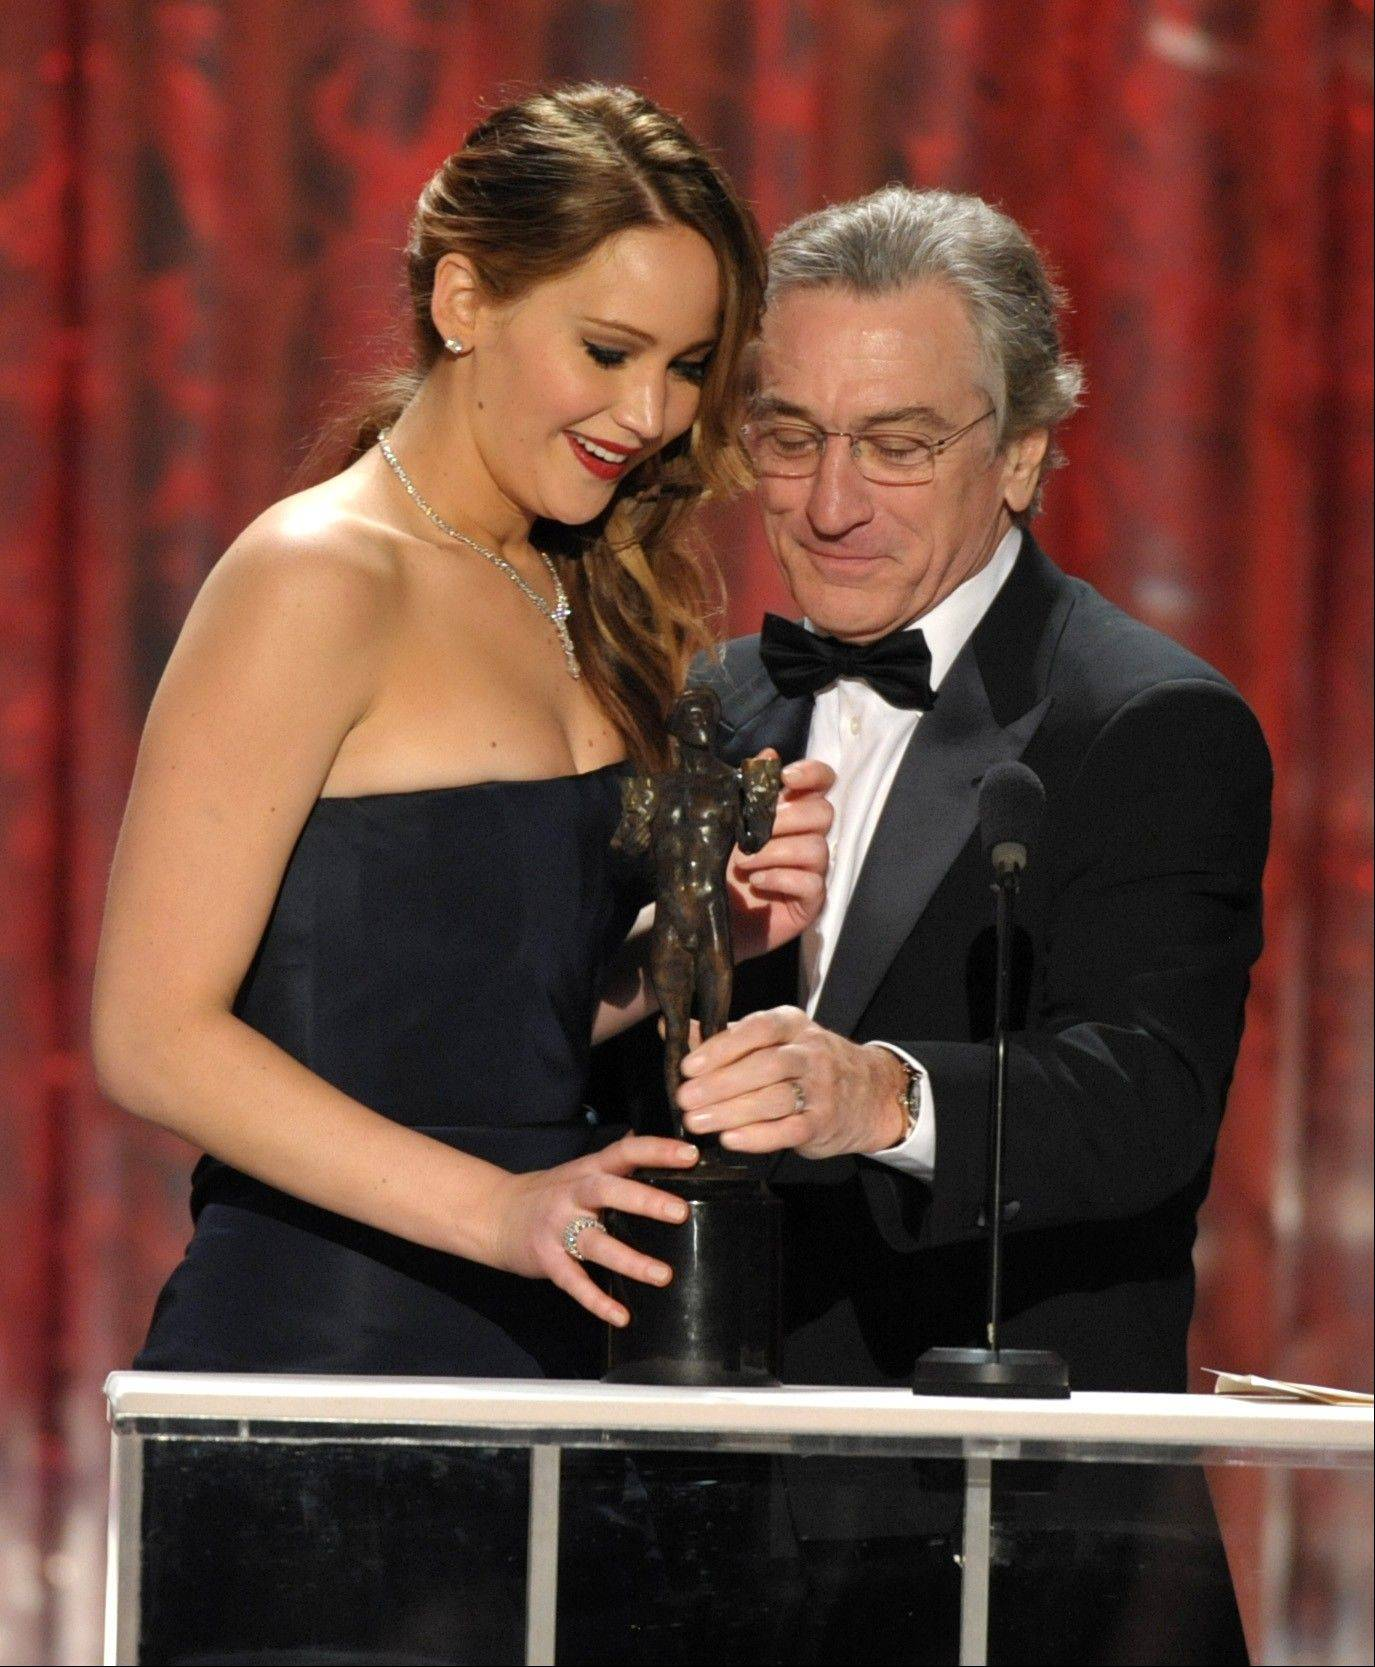 Robert De Niro watches as Jennifer Lawrence accepts the award for outstanding female actor in a leading role for �Silver Linings Playbook� at the 19th Annual Screen Actors Guild Awards at the Shrine Auditorium in Los Angeles on Sunday Jan. 27, 2013.